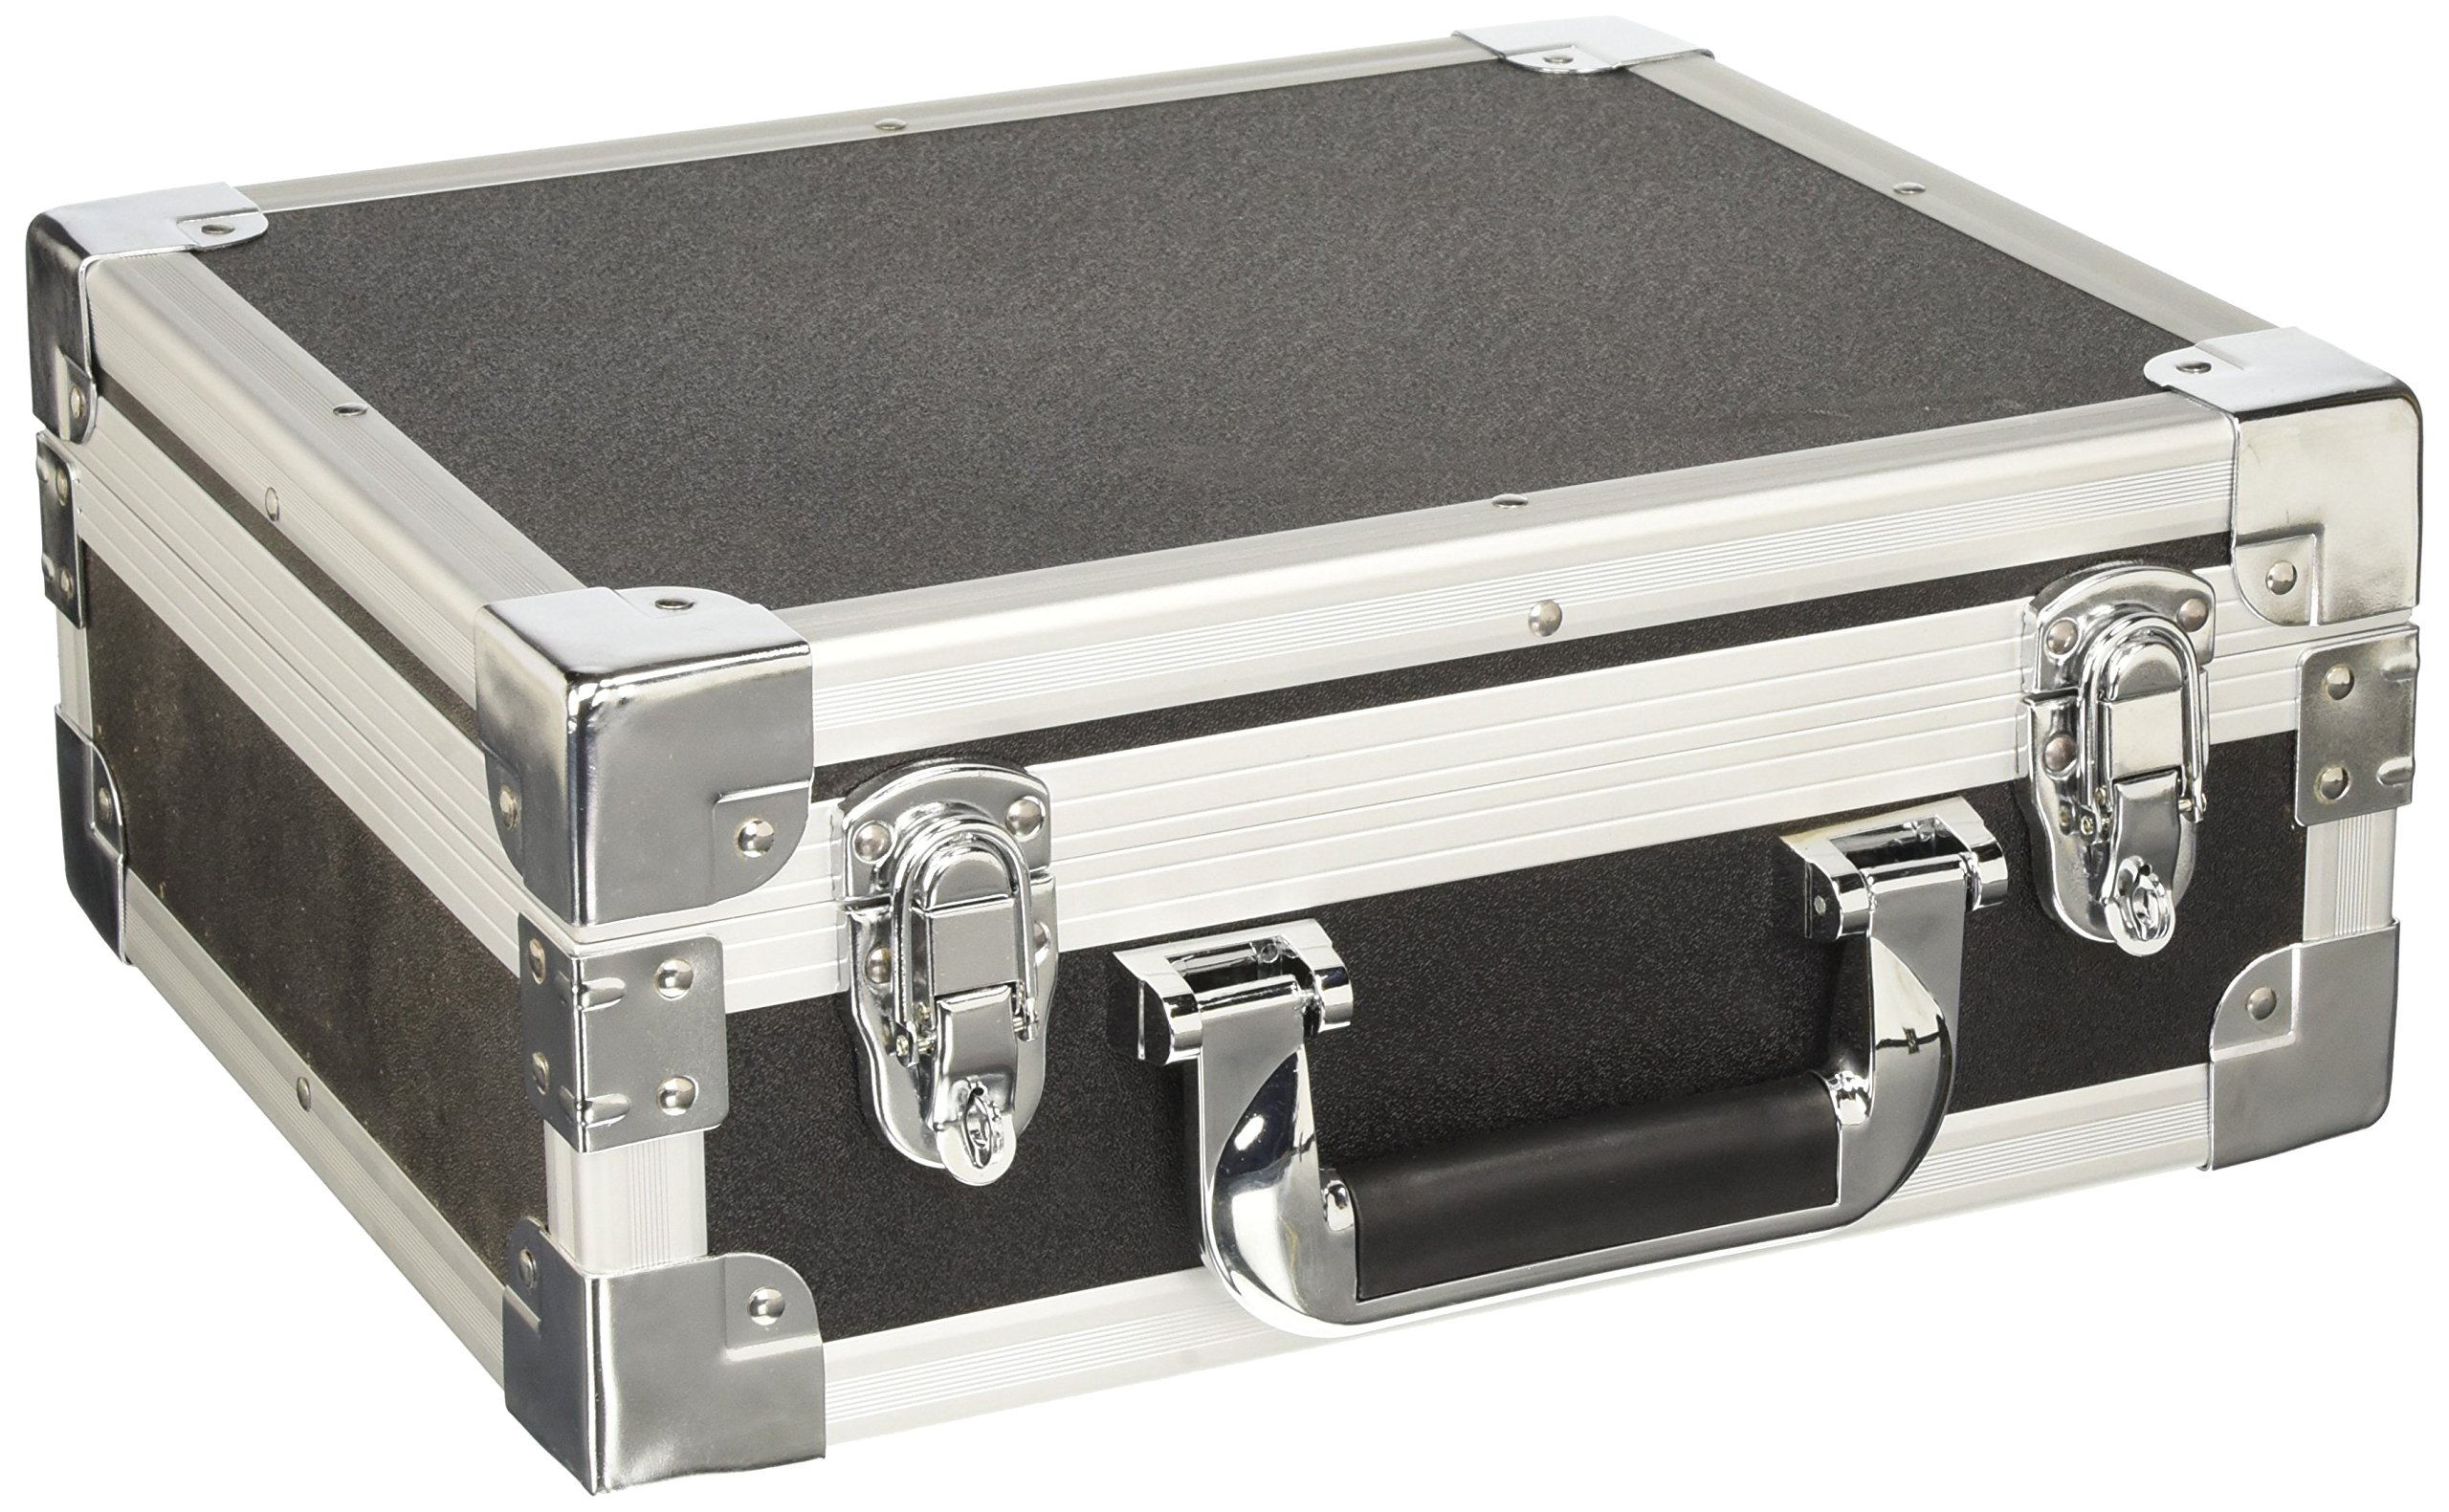 SRA Cases Heavy Duty Aluminum Hard Case, Black, 13 x 11 x 5.1 Inches by SRA Cases